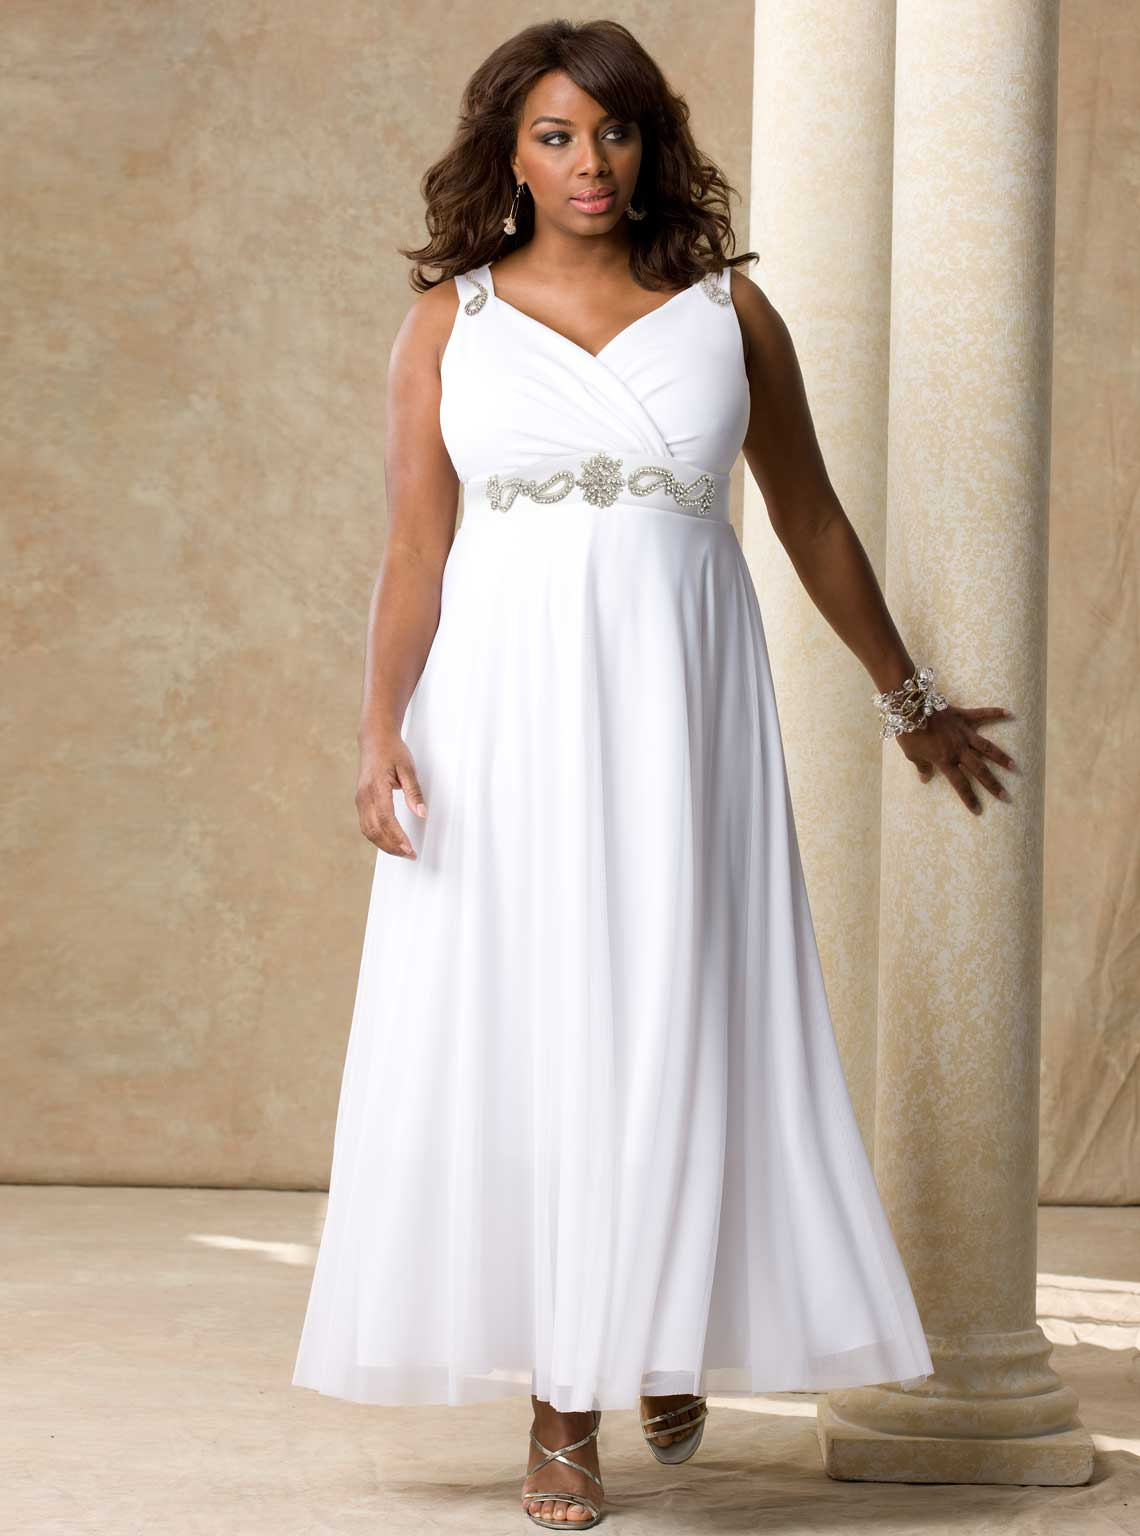 Simple plus size wedding dresses cherry marry for Simple wedding dresses under 200